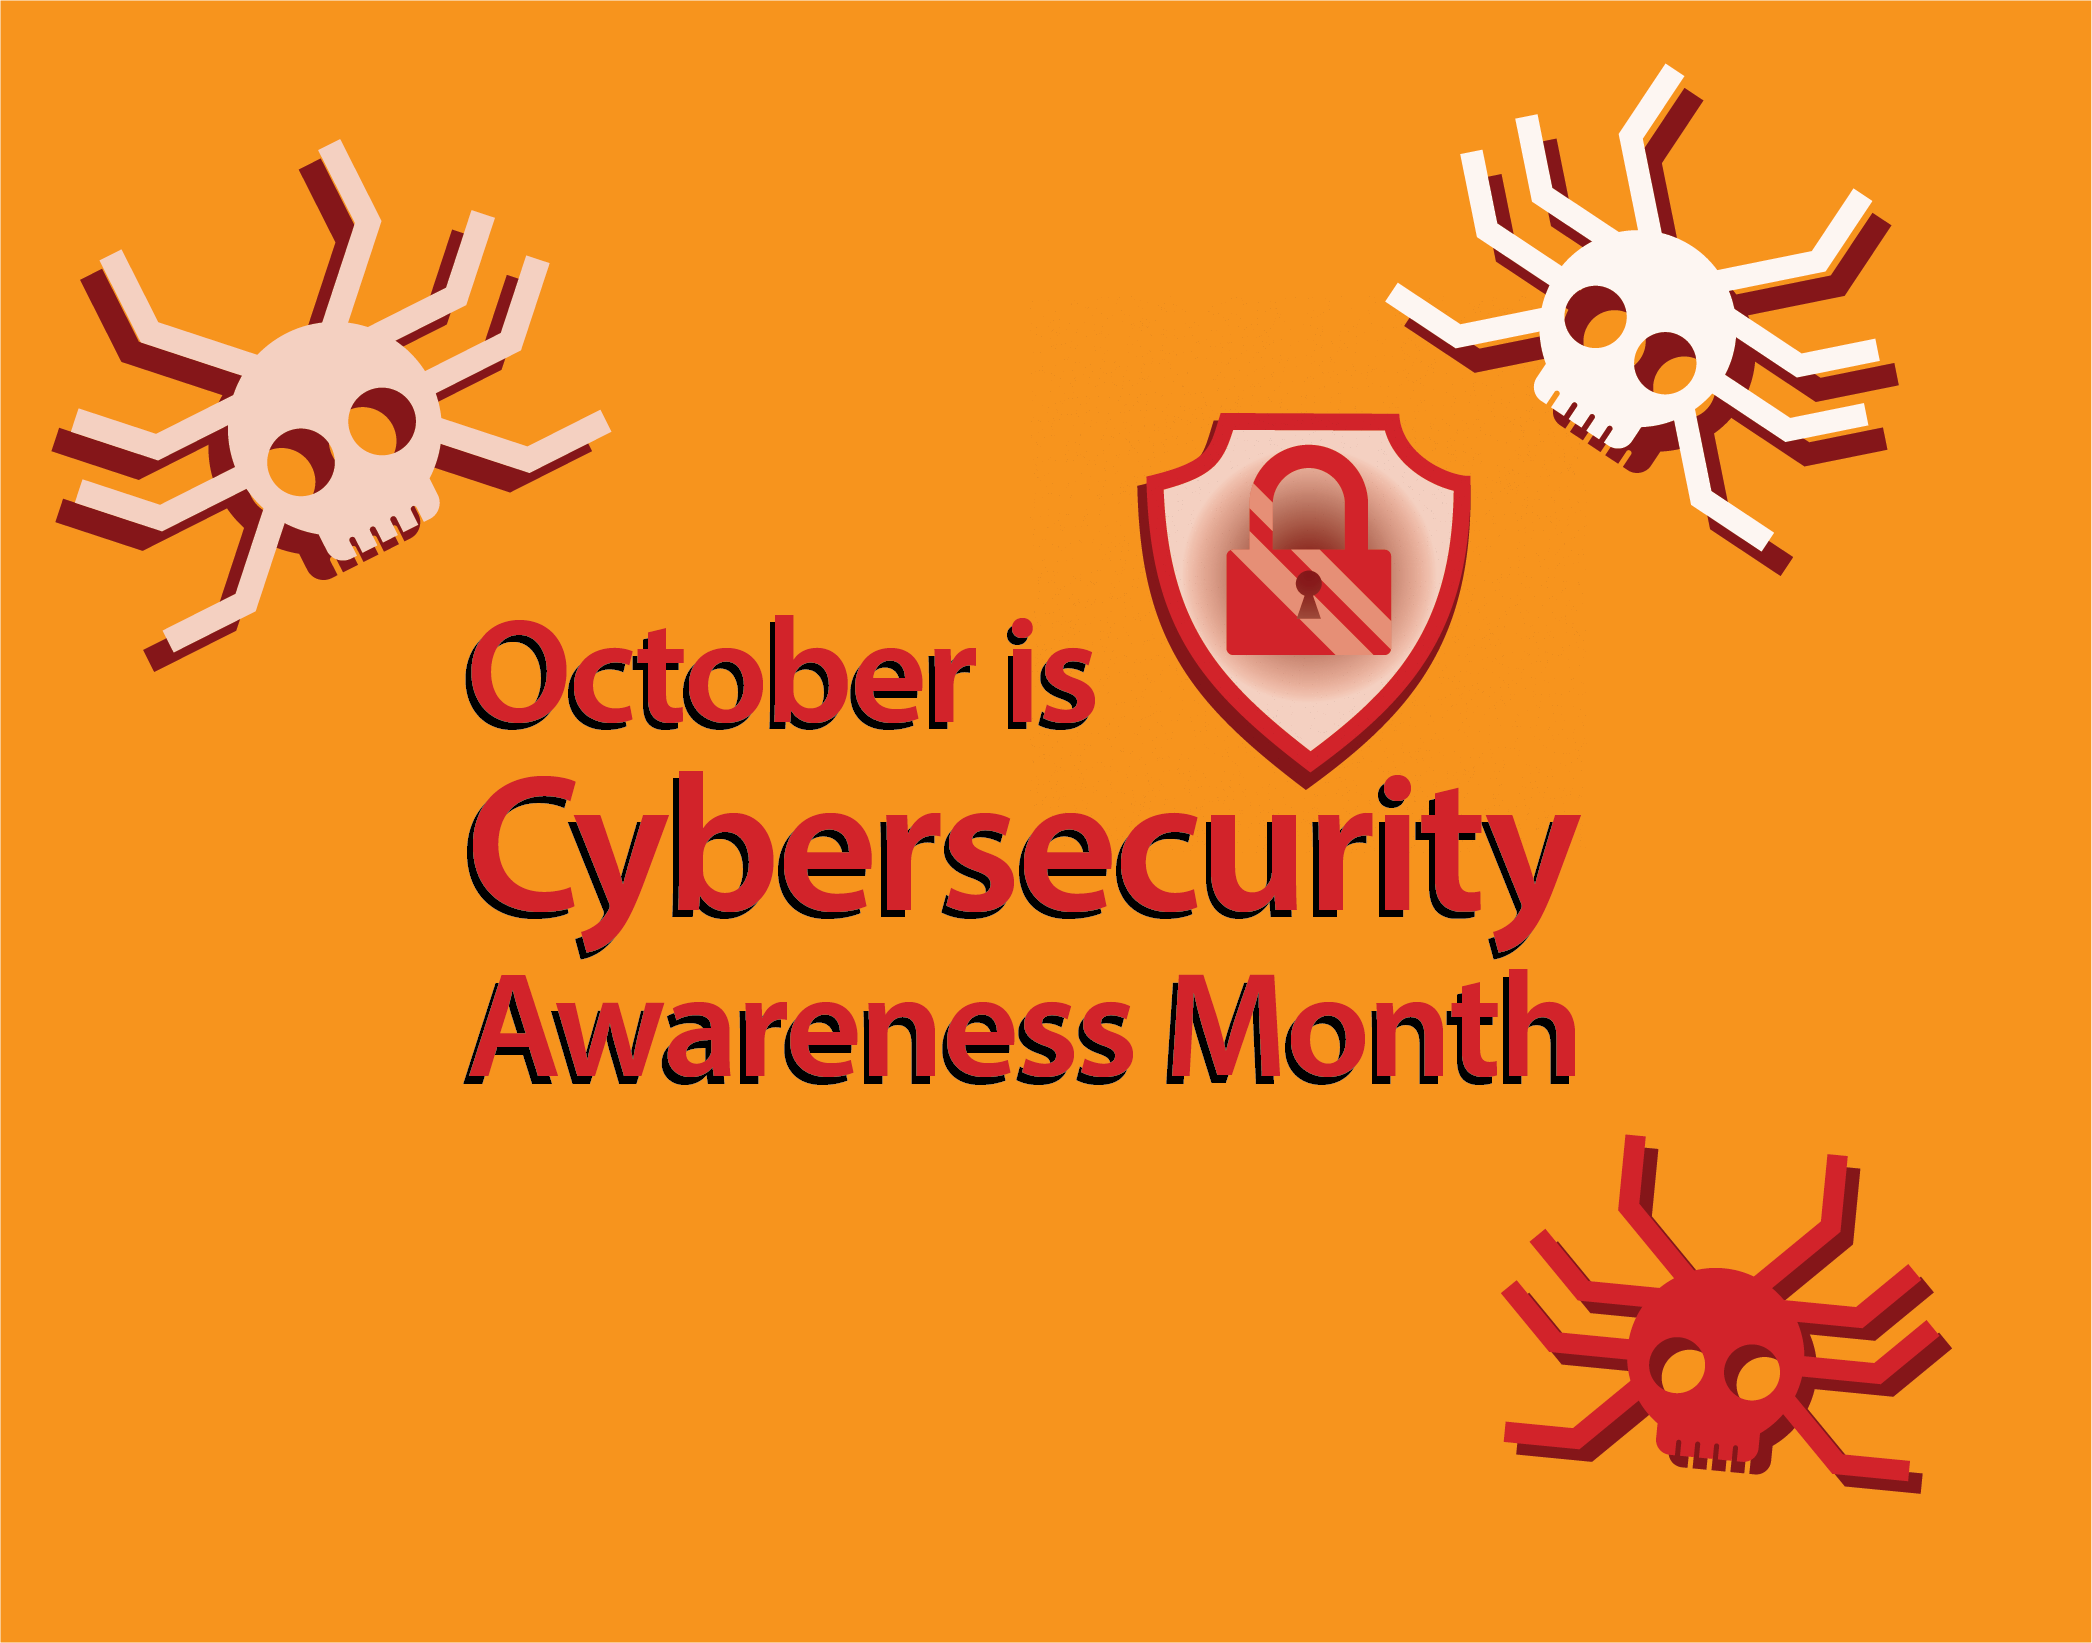 Cybersecurity Awareness Month Themes 2019